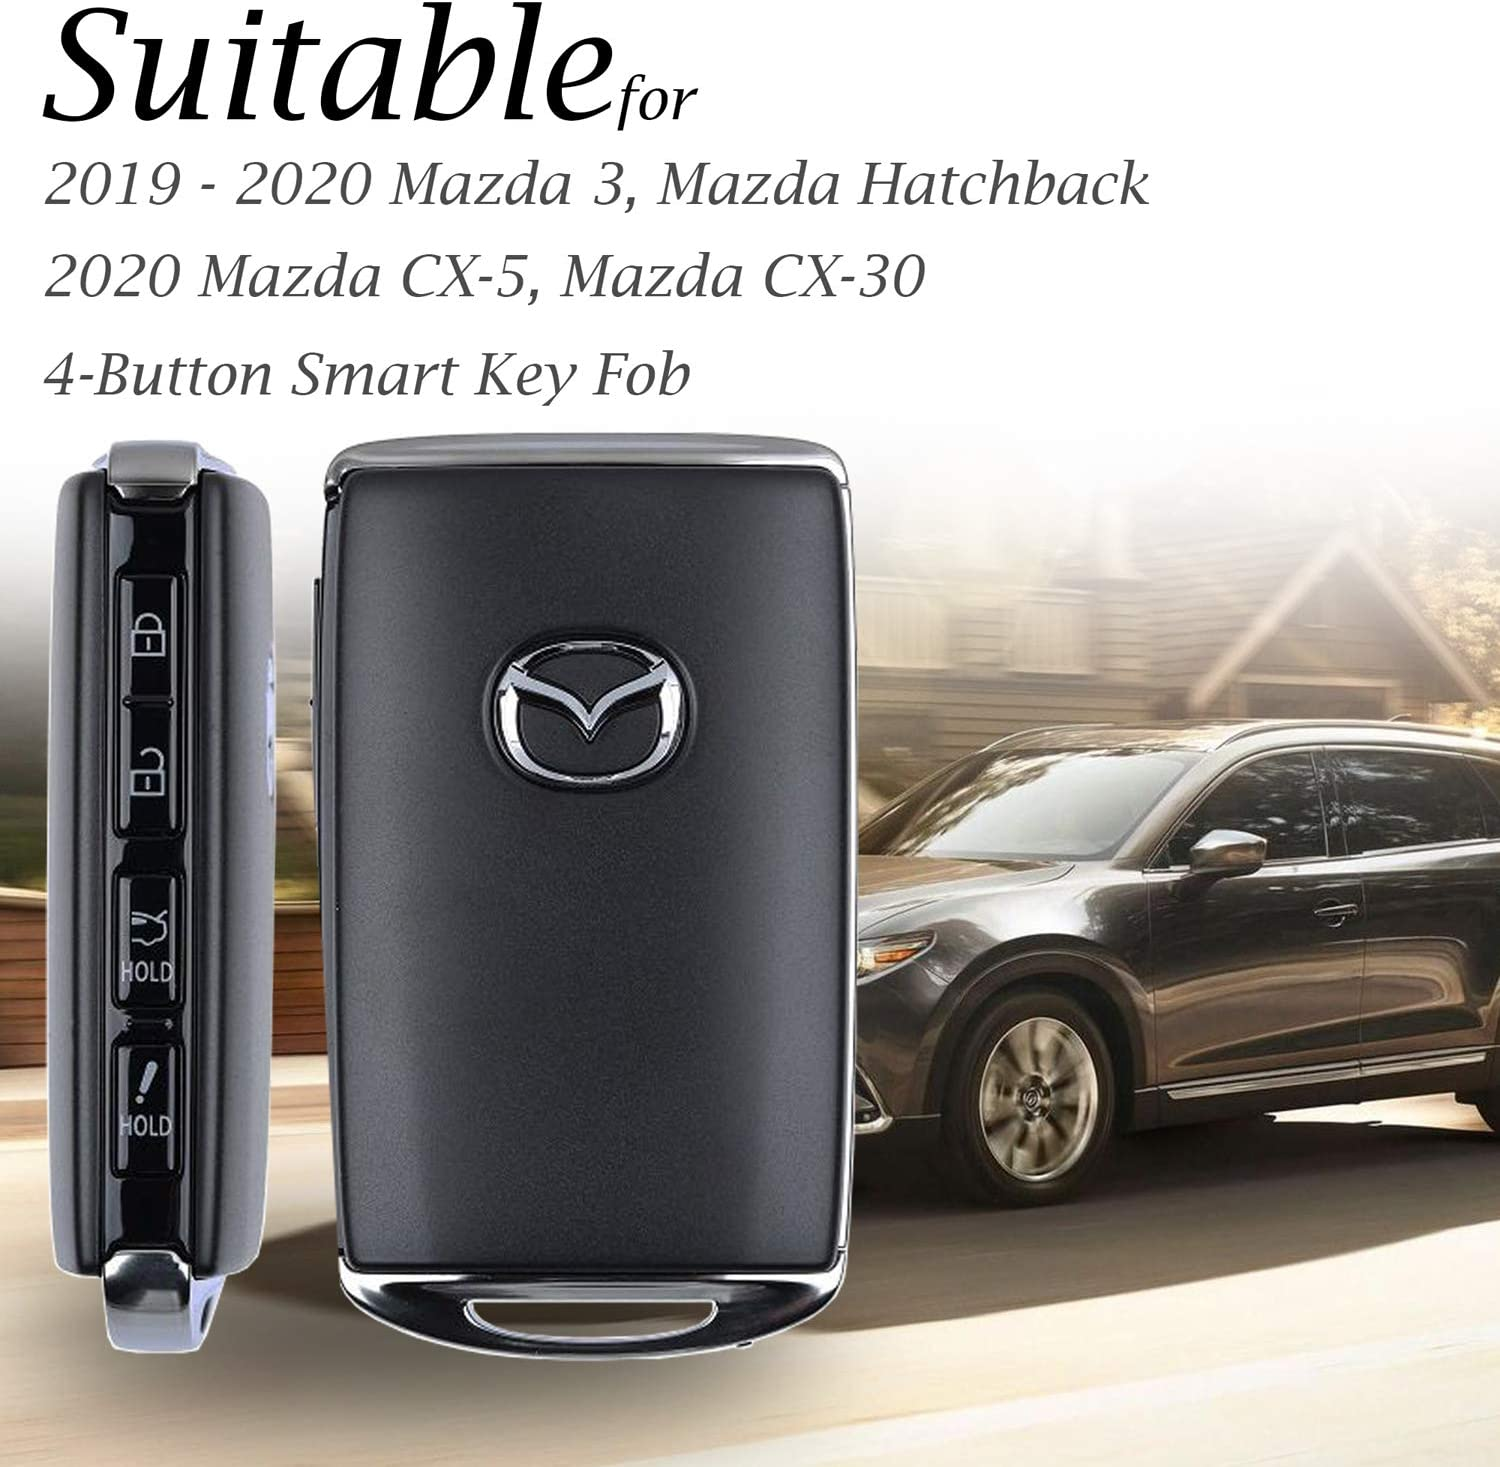 CX-30 4-Button, Brown Mazda 3 Hatchback 2020 Mazda CX-5 Vitodeco Genuine Leather Smart Key Fob Case Cover Protector with Leather Key Holder for 2019-2020 Mazda 3